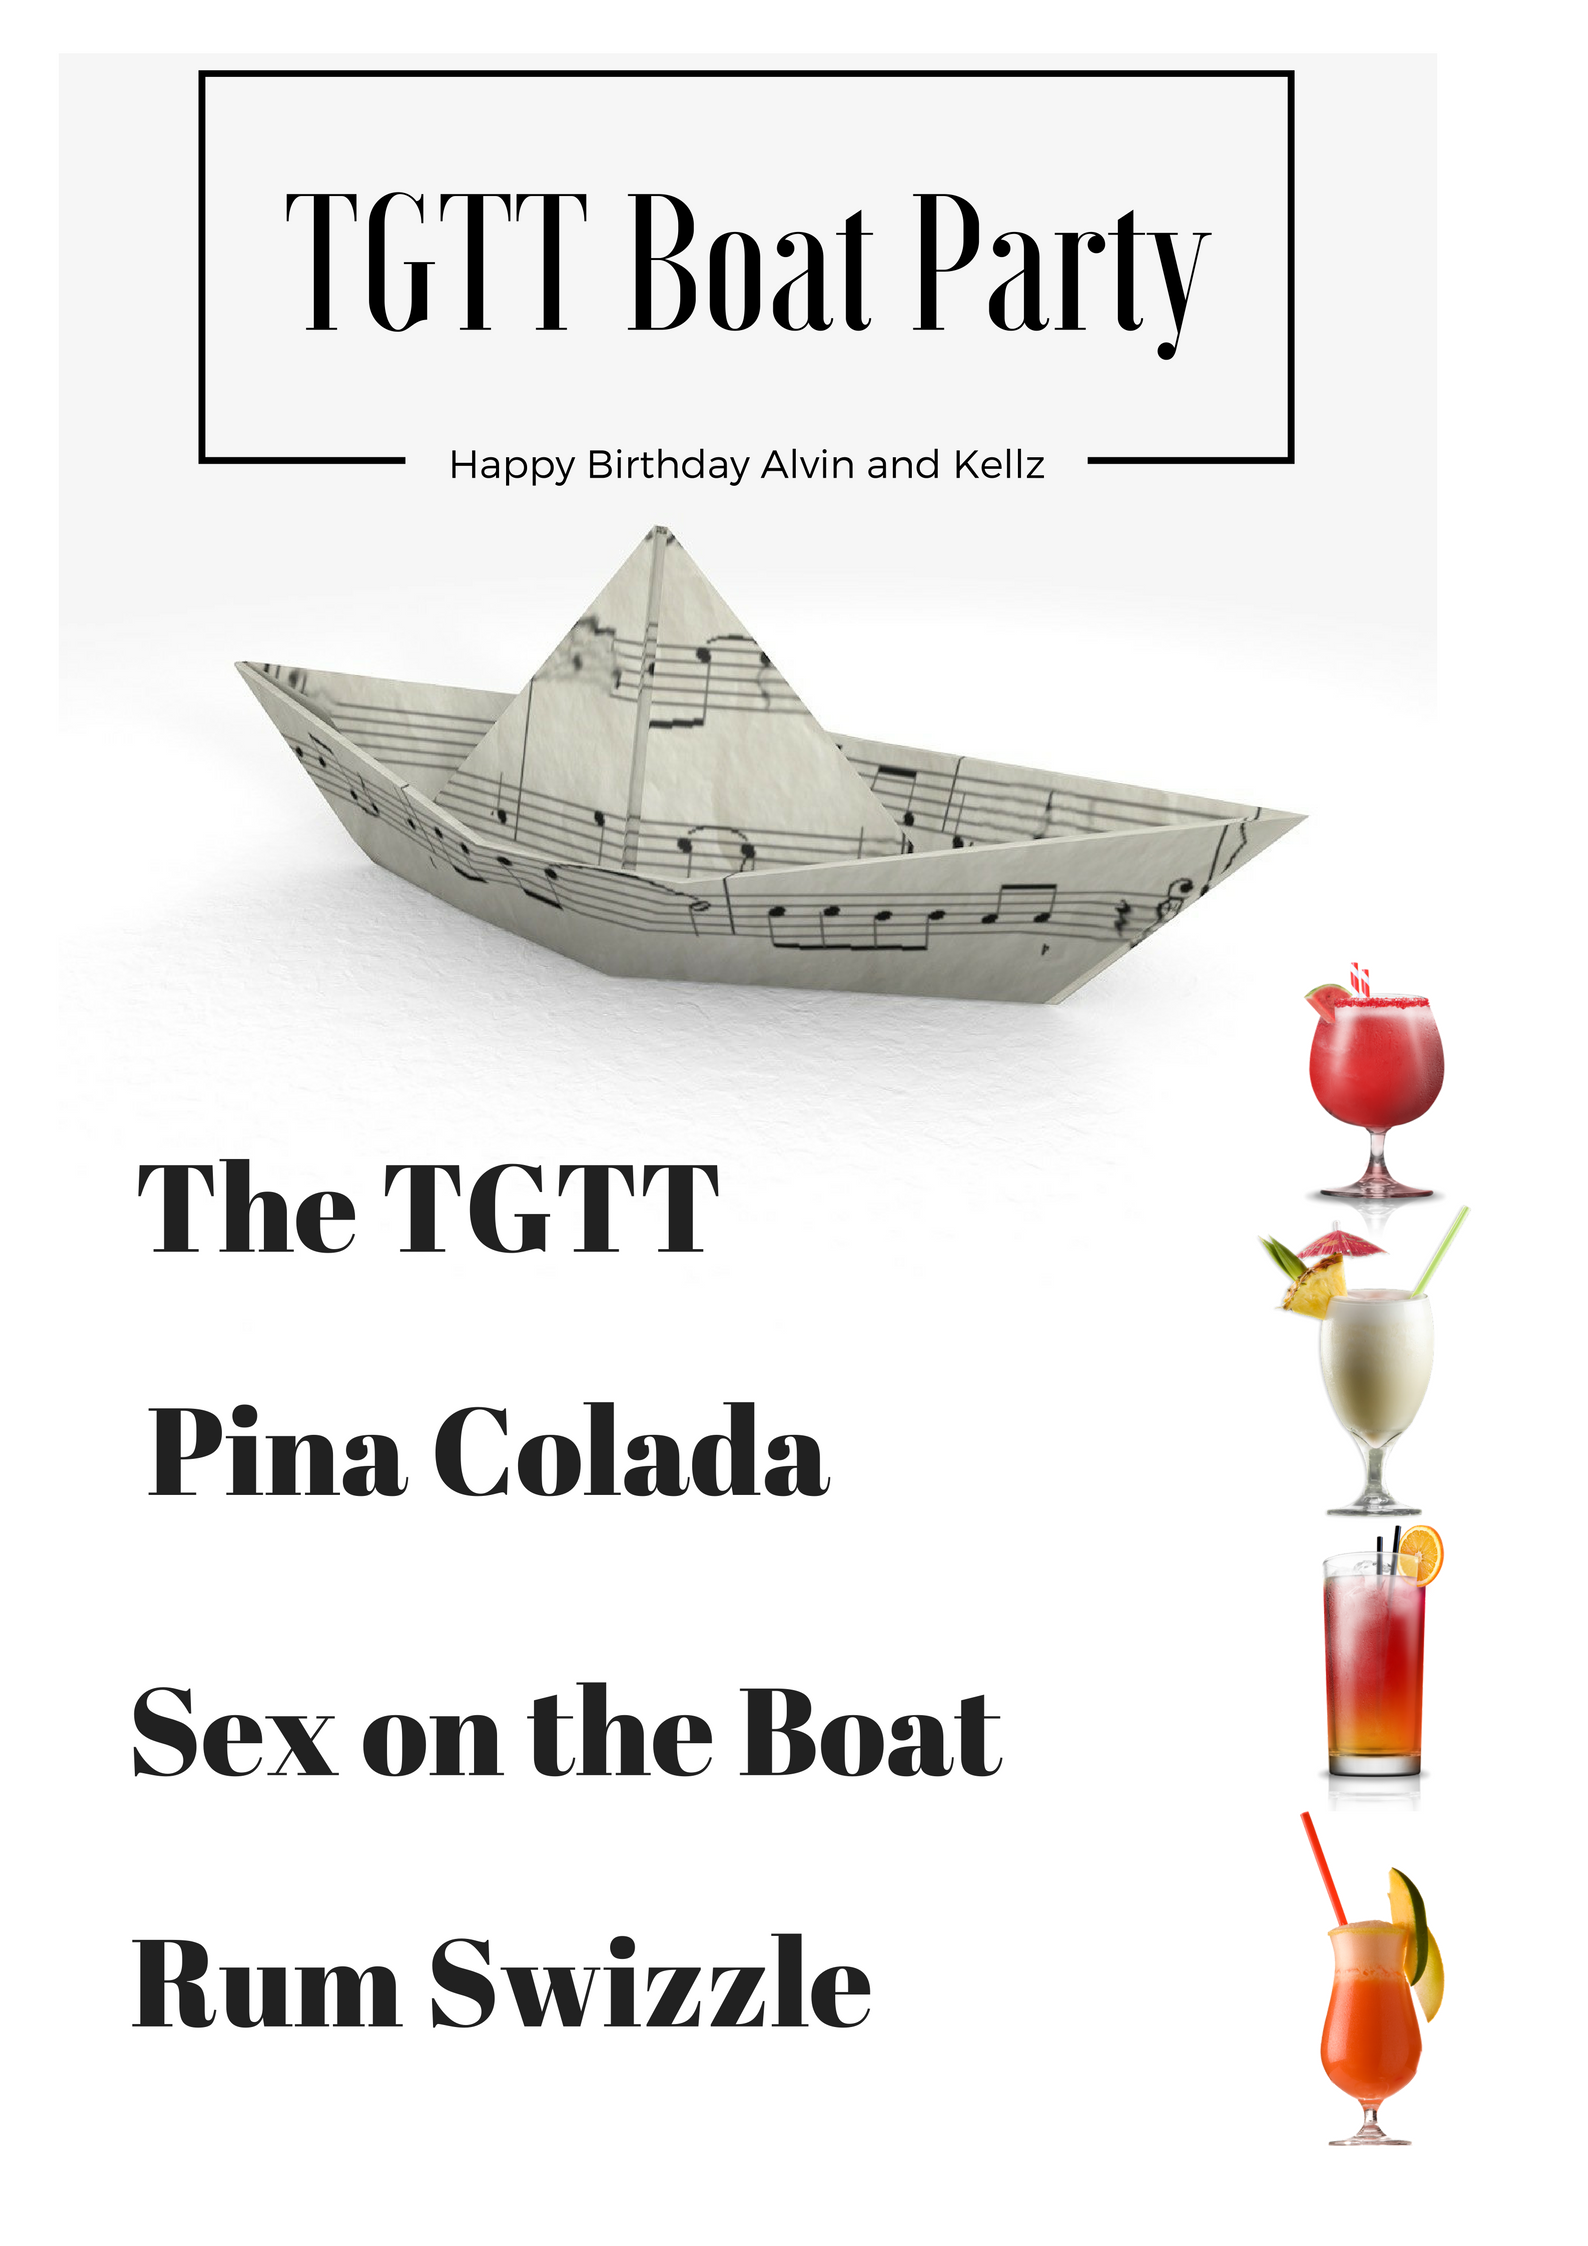 TGTT Boat Party.png